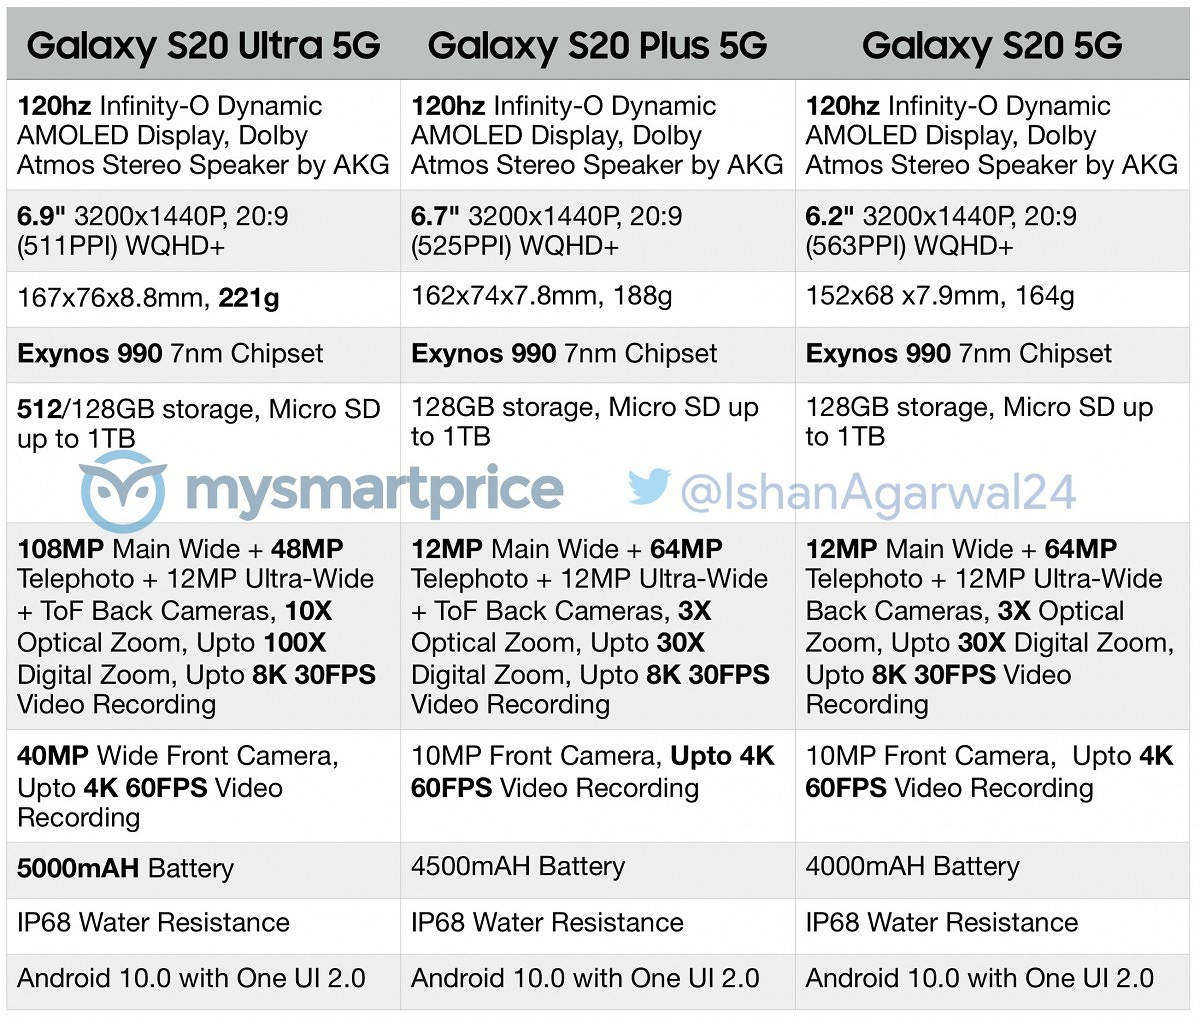 Samsung Galaxy S20 5g Series Leak Gives Us Full Rundown Of Specifications